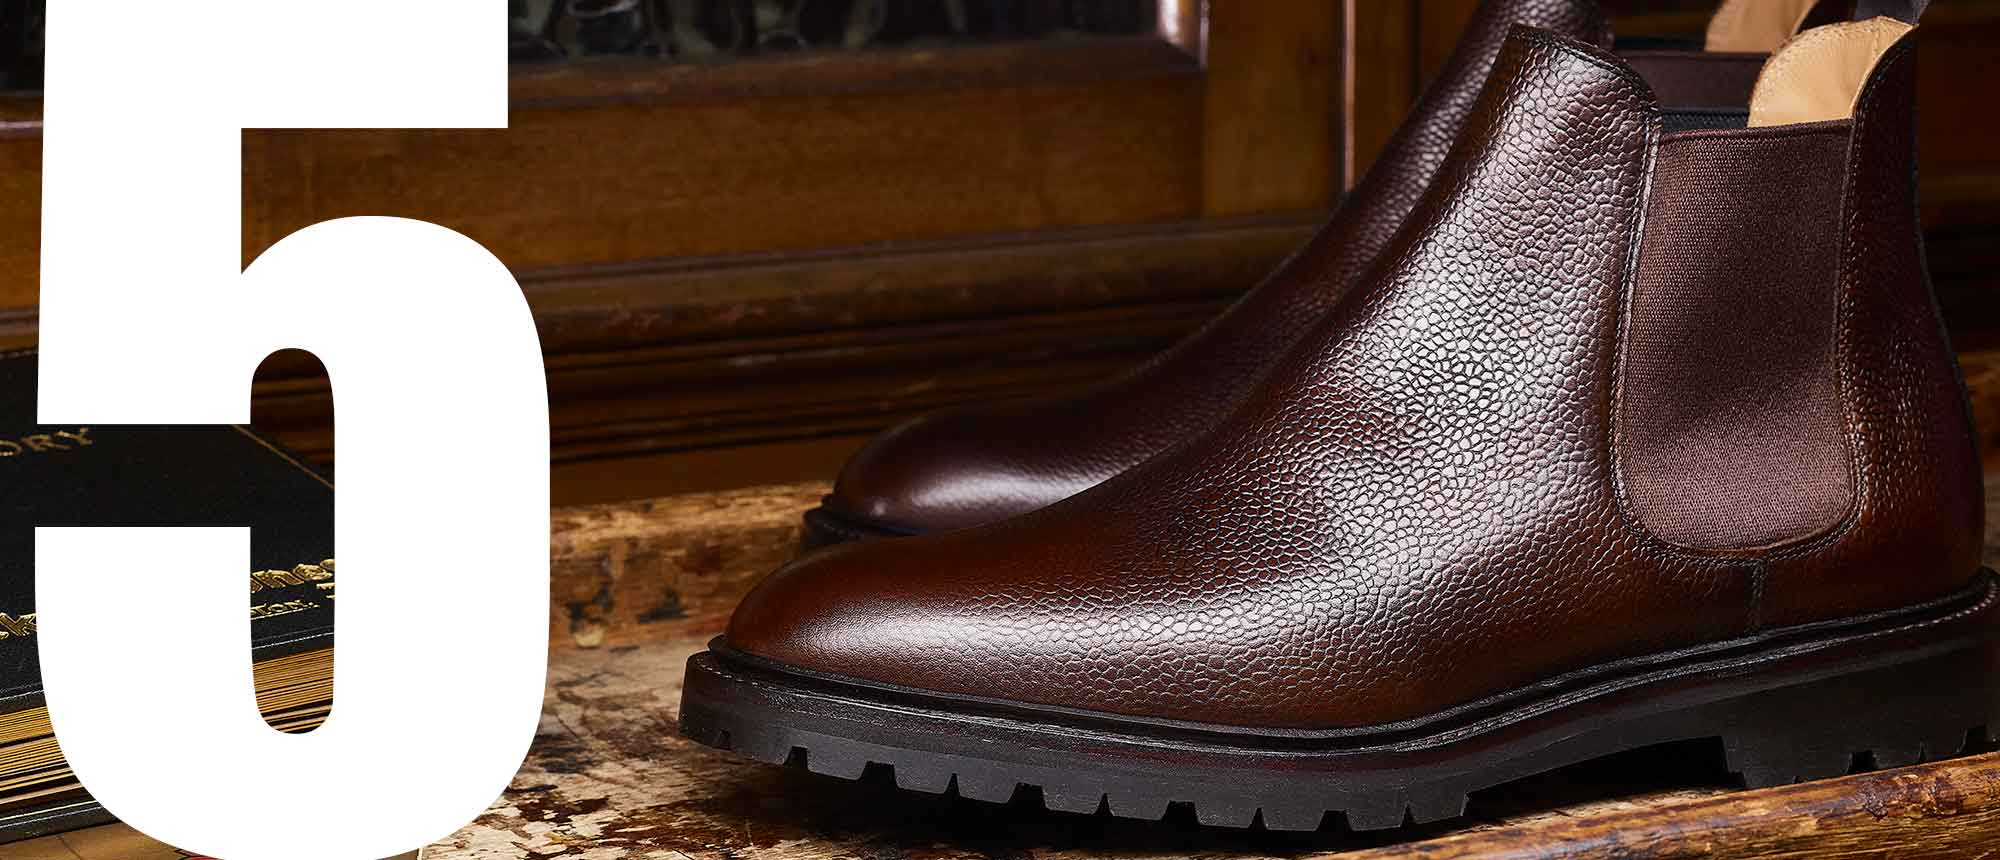 Crockett & Jones - Top 5 Men's Grain Styles